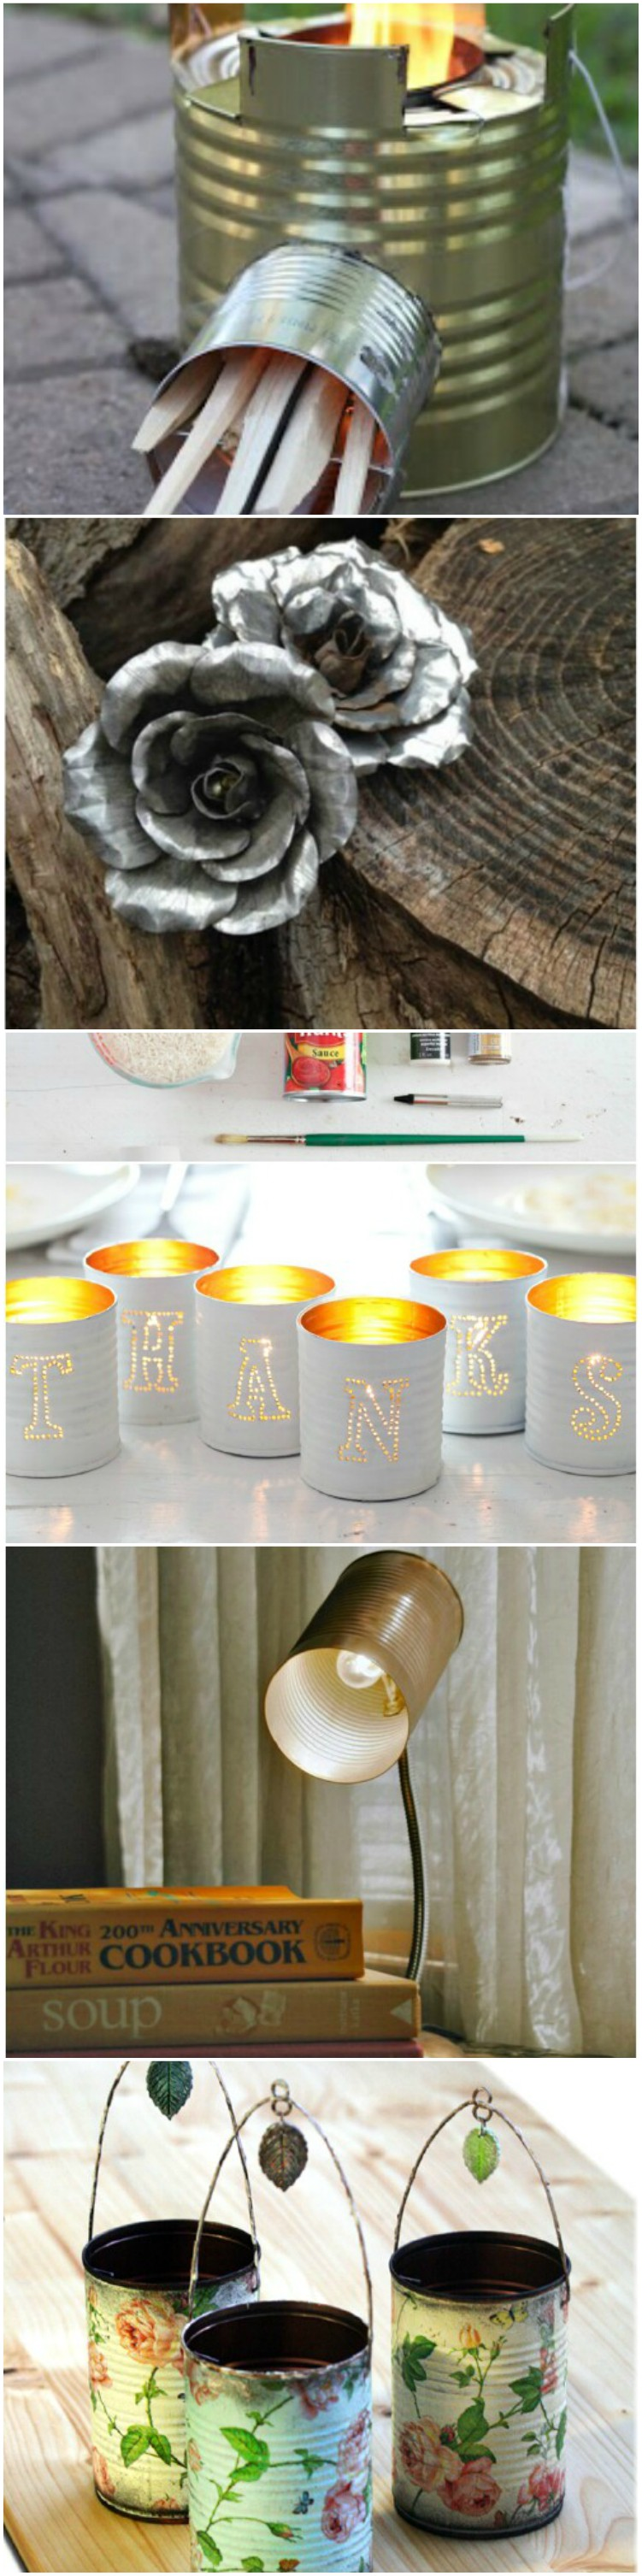 10 awesome DIY projects using tin cans